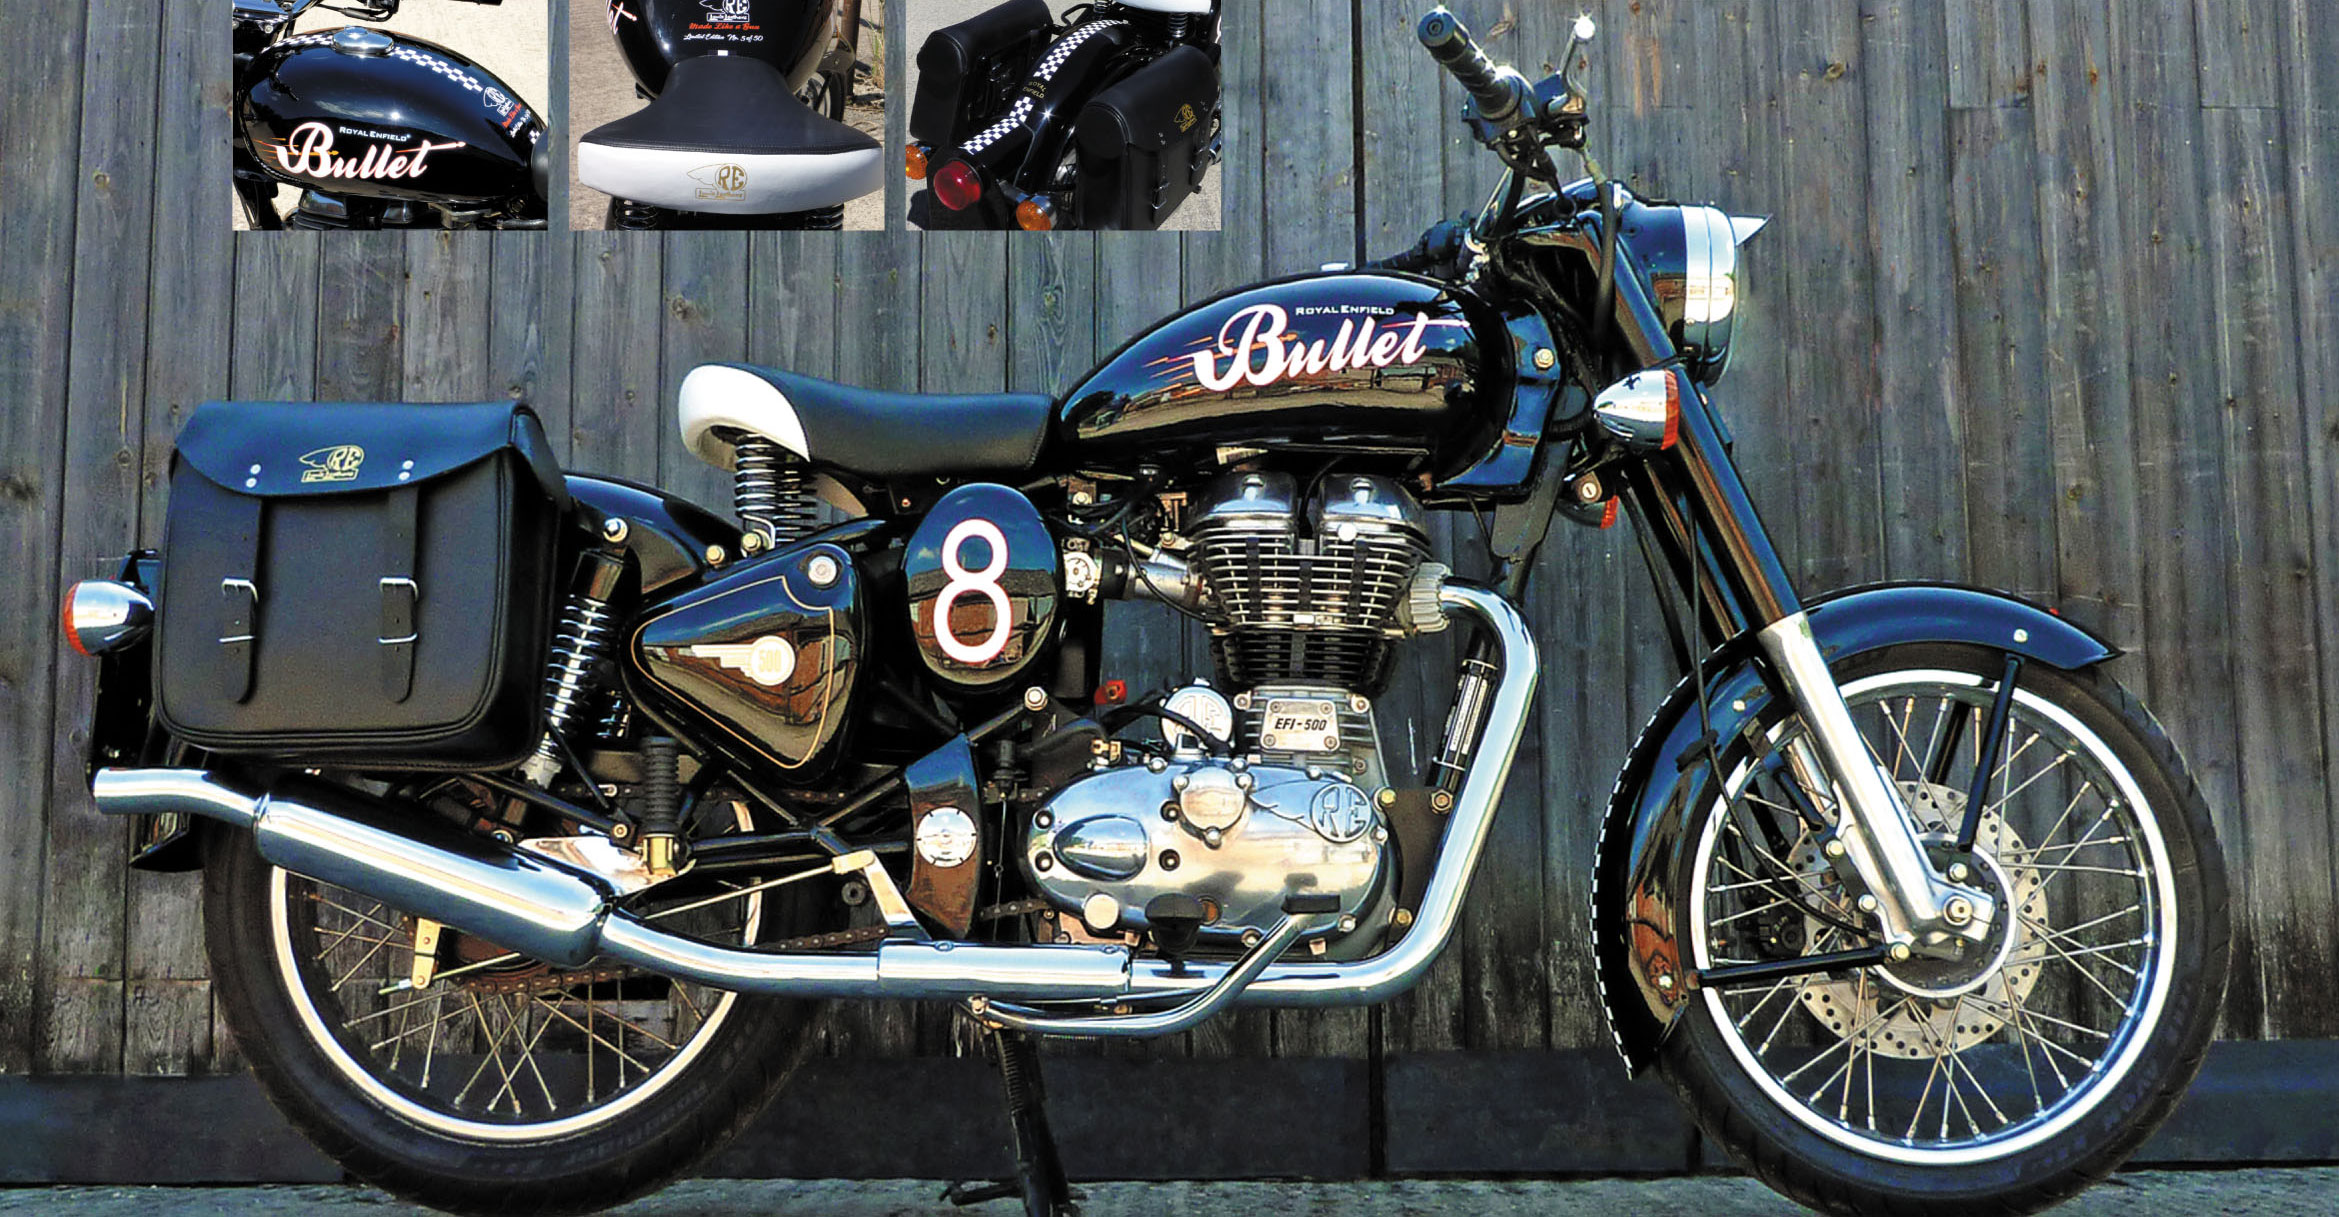 Royal Enfield Bullet 500 Trial Trail 2003 images #123205